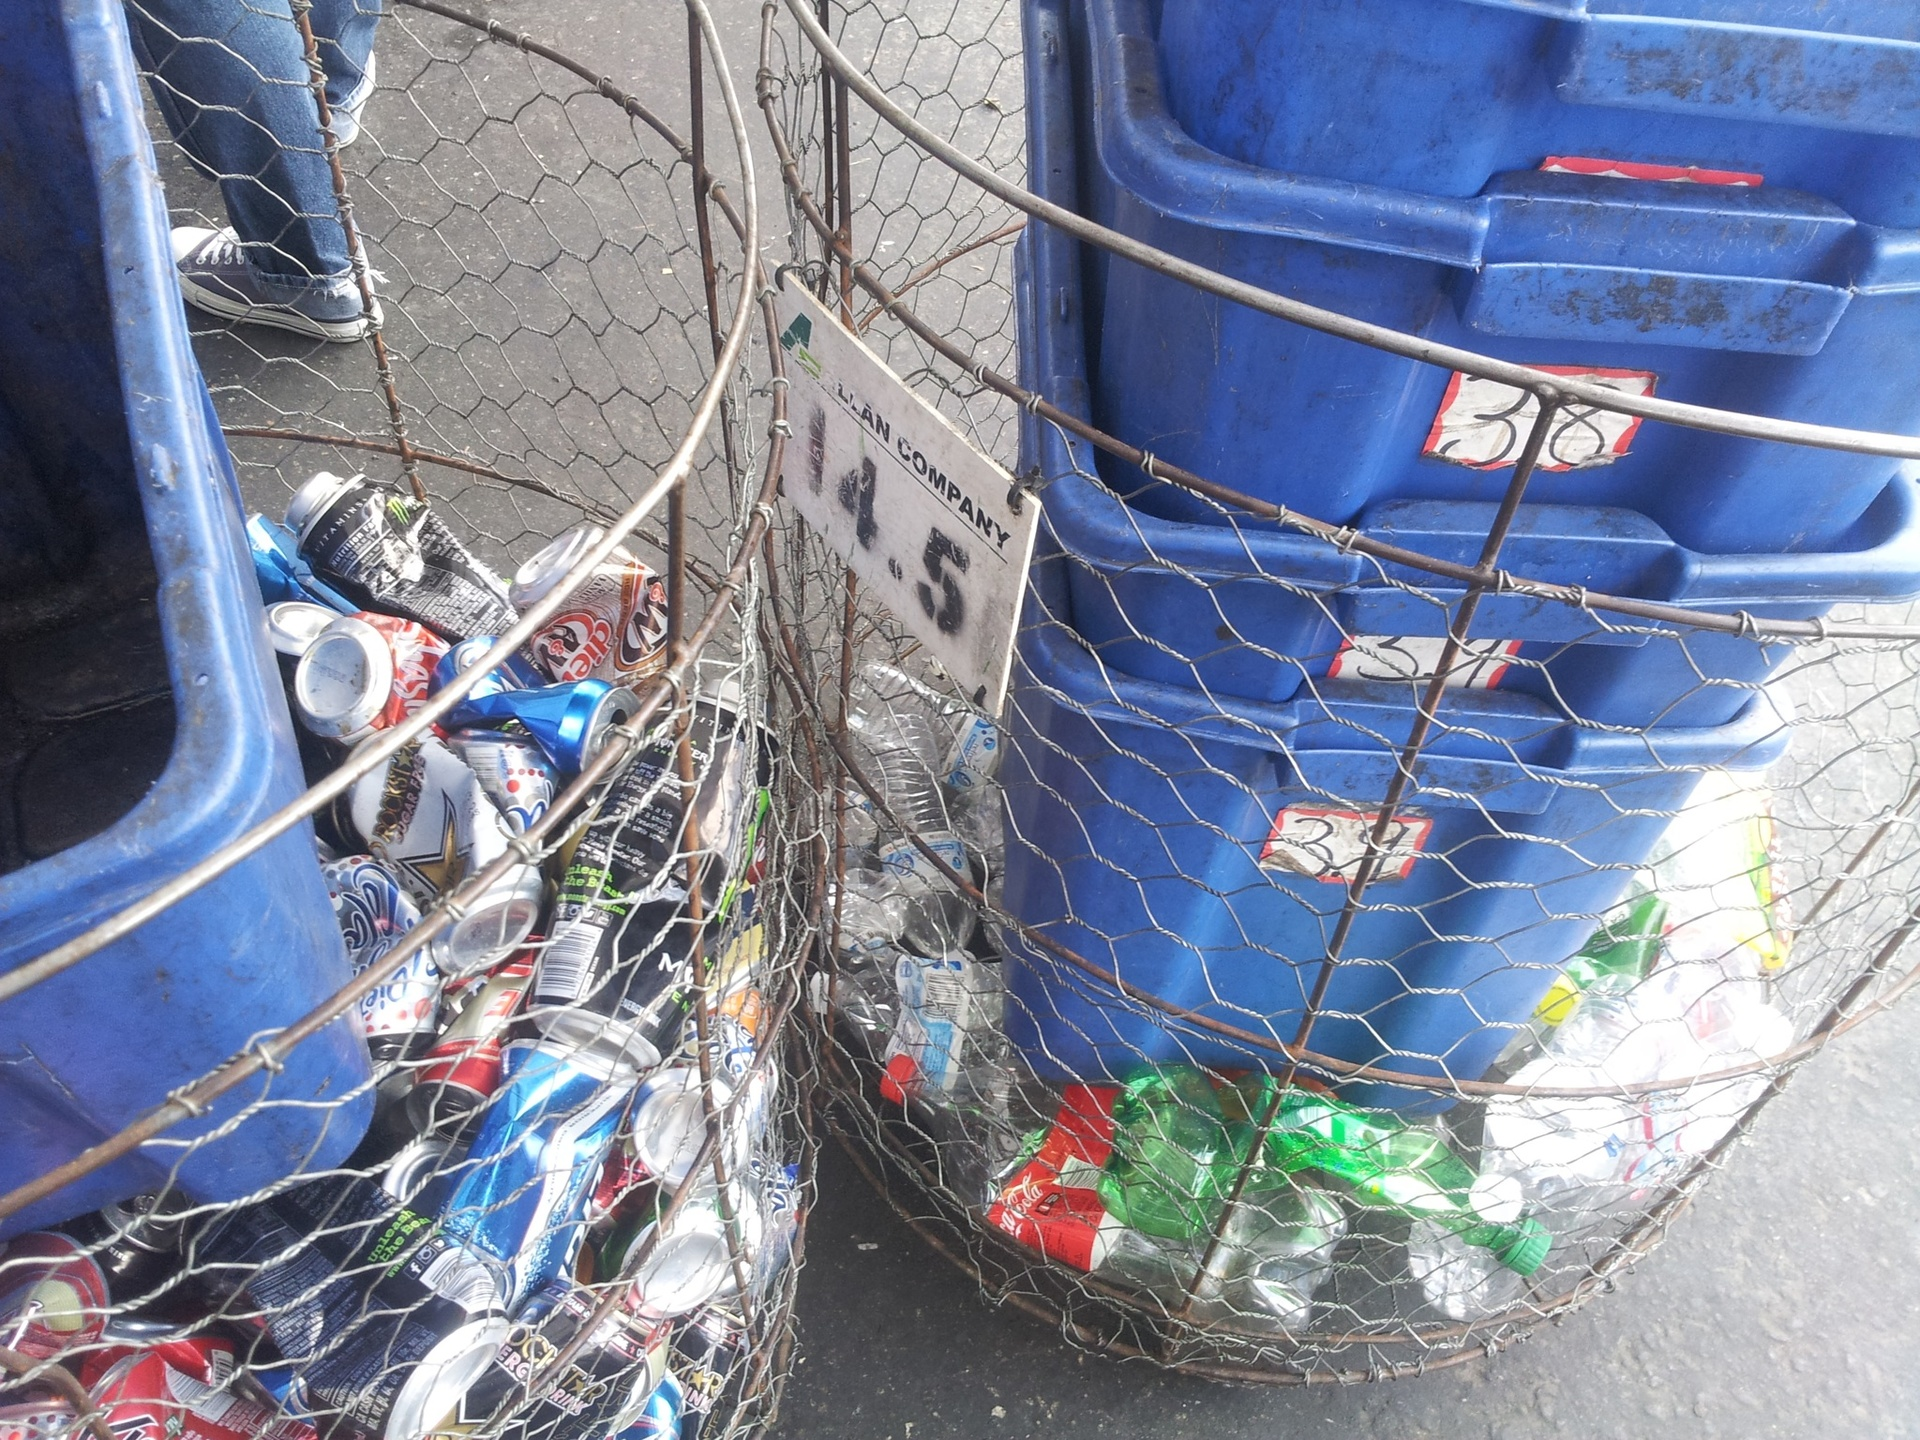 Taking in the recycling: Bottles, cans, etc